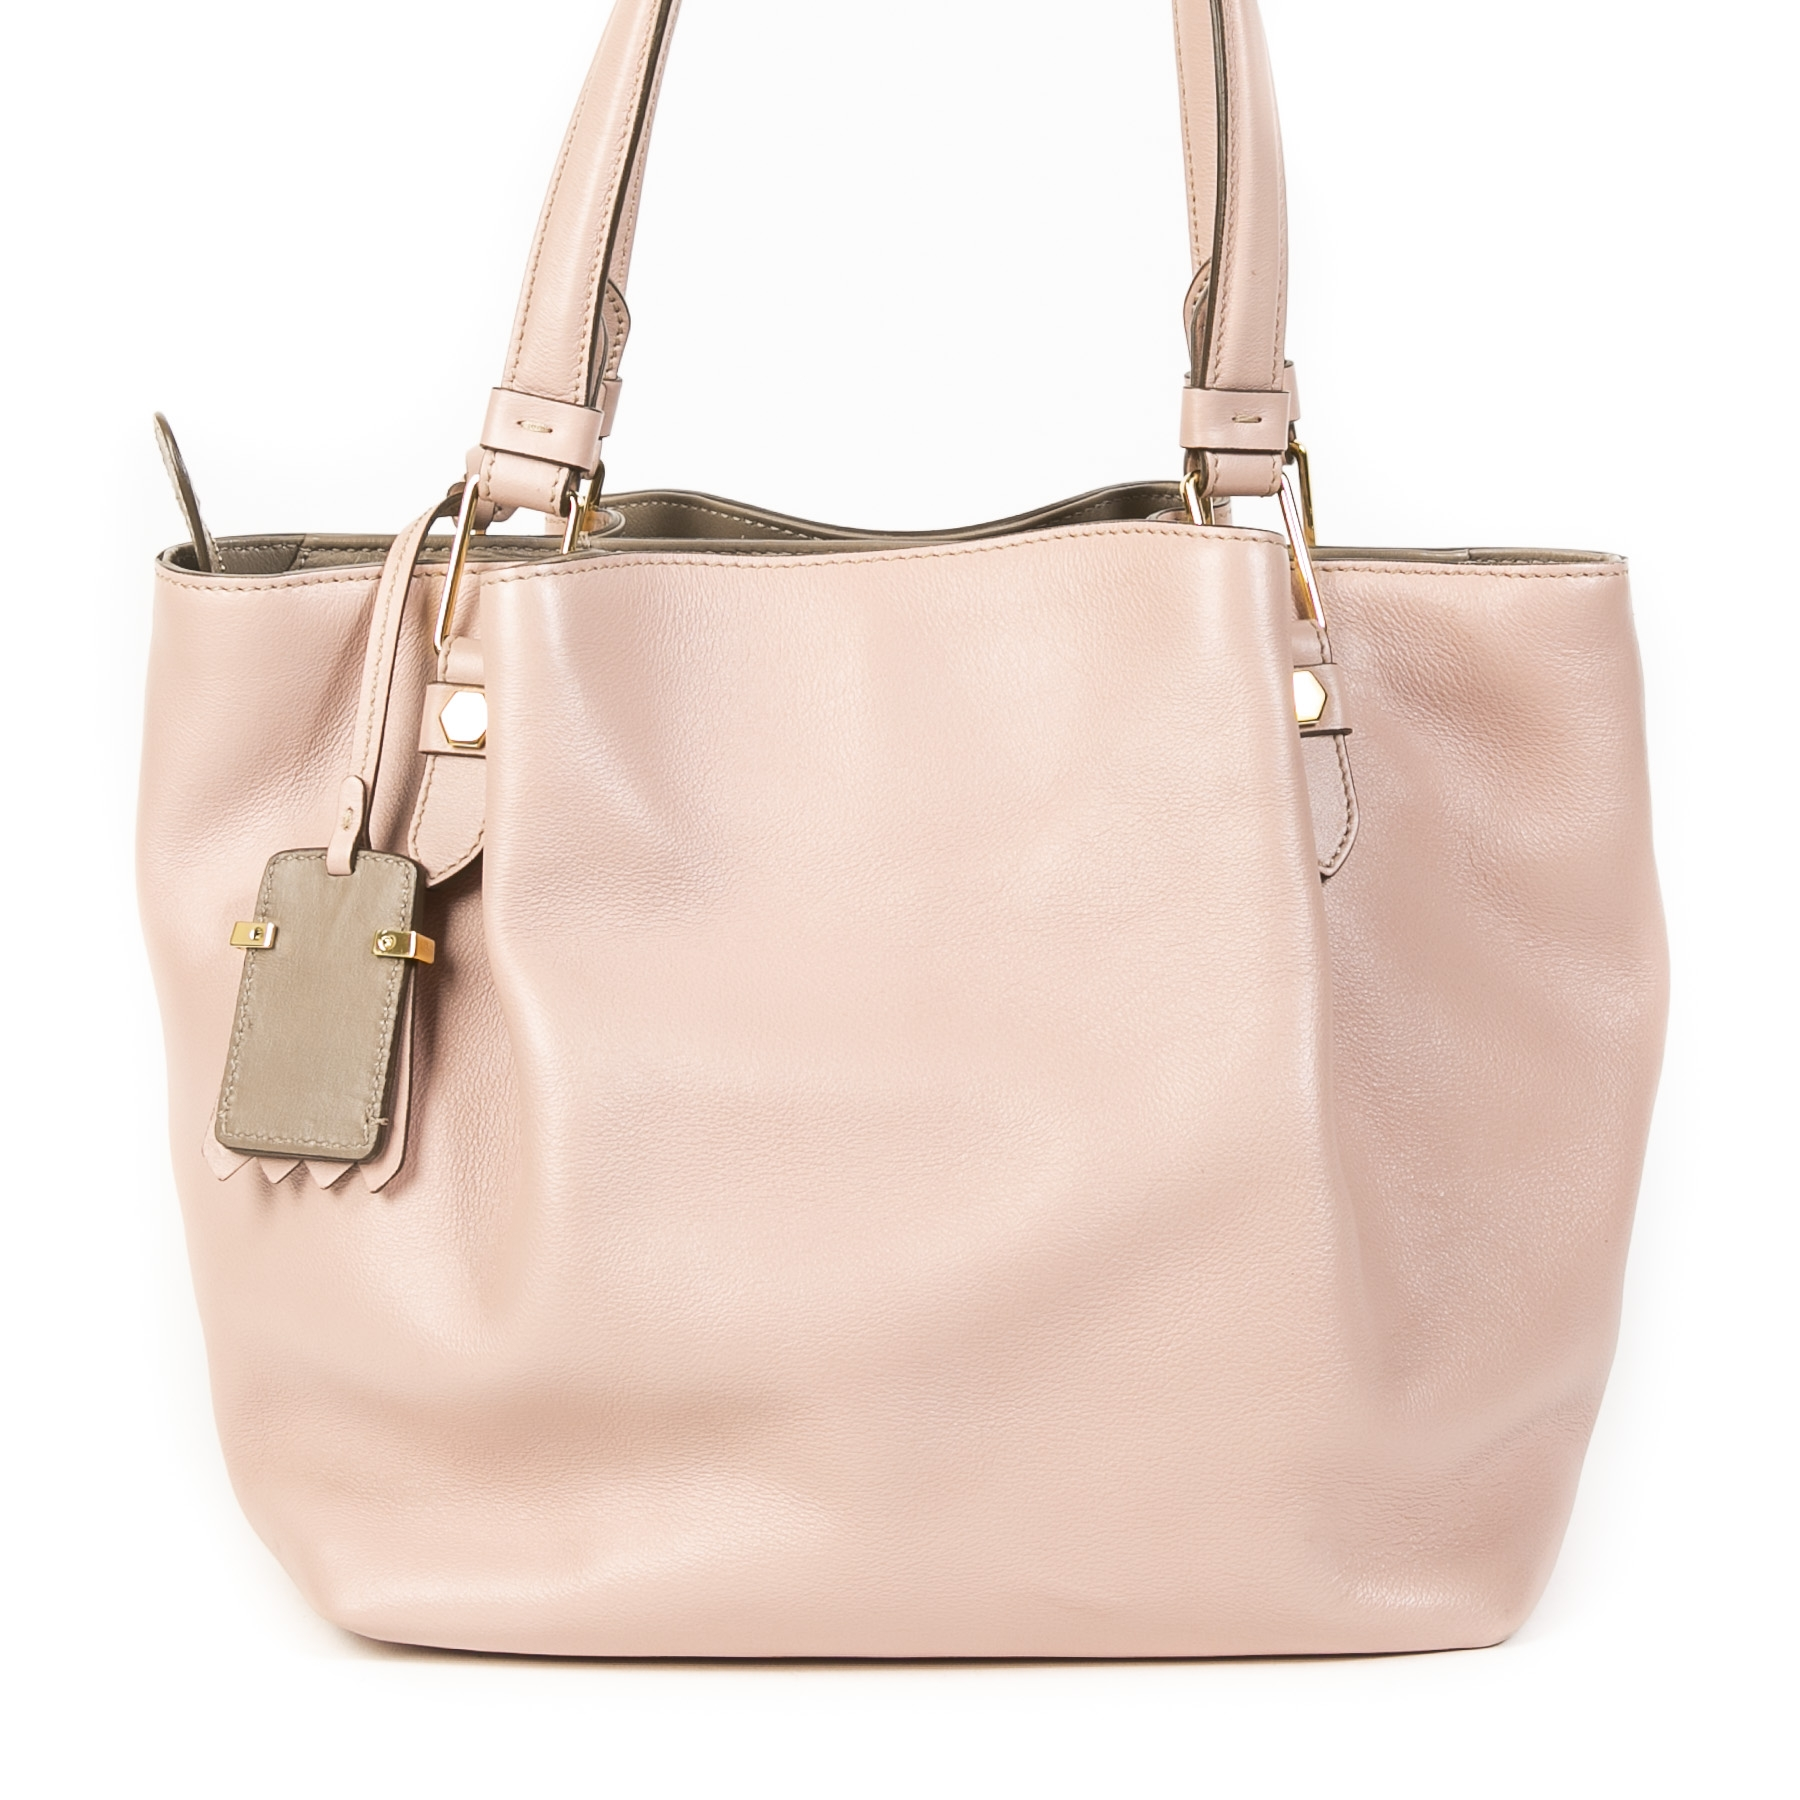 We buy and sell your authentic Tods Pink Mini Flower Shopping Bag